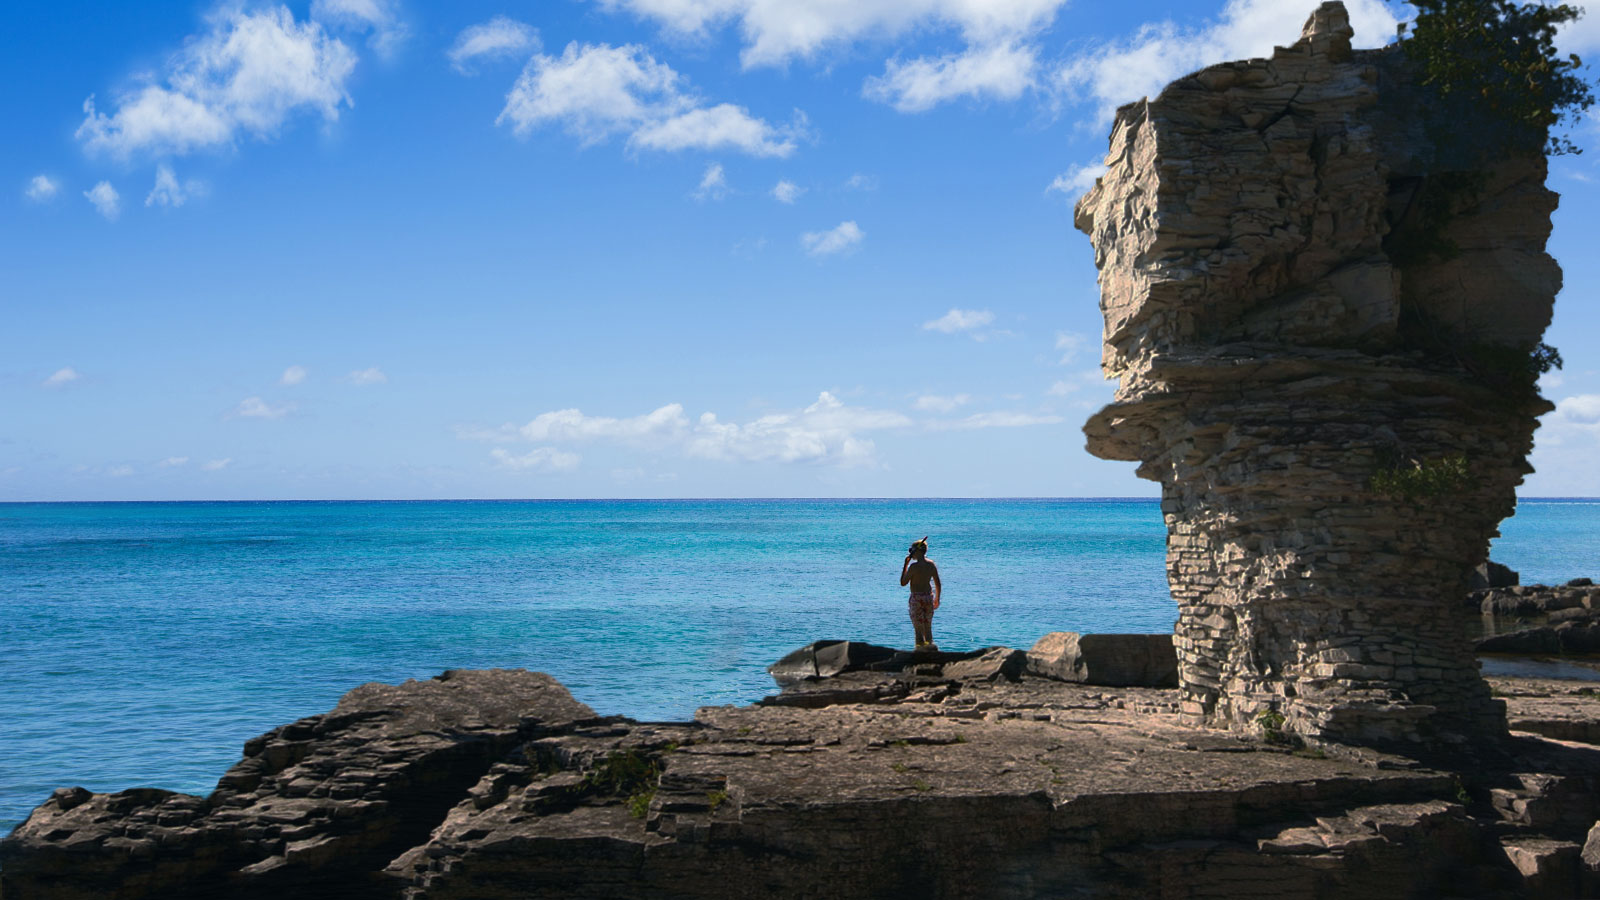 Boy with snorkel on Flowerpot Island at Fathom Five National Marine Park.